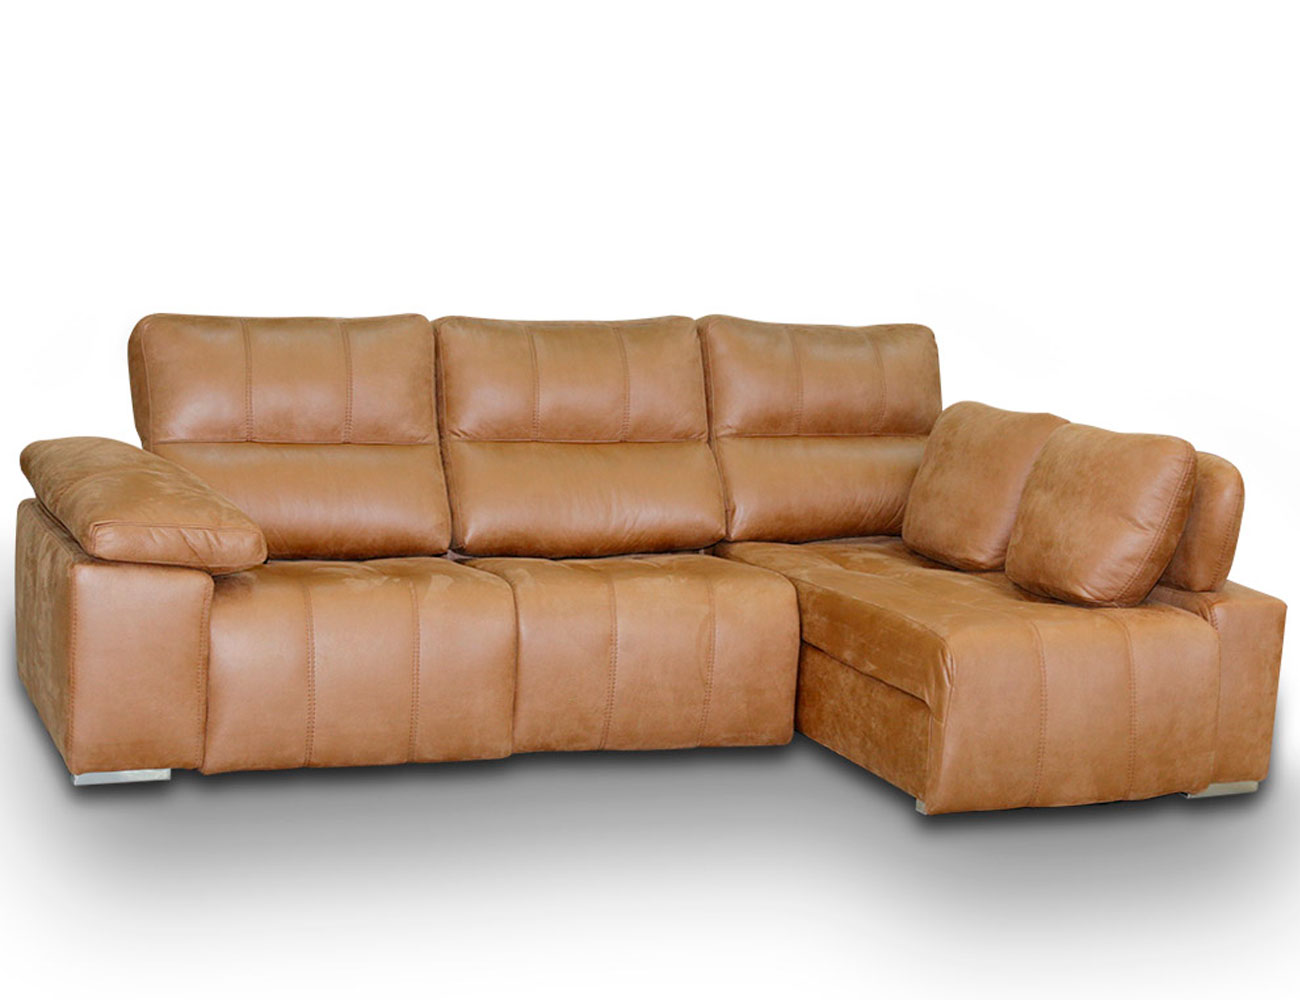 Sofa chaiselongue relax 2 motores anti manchas5